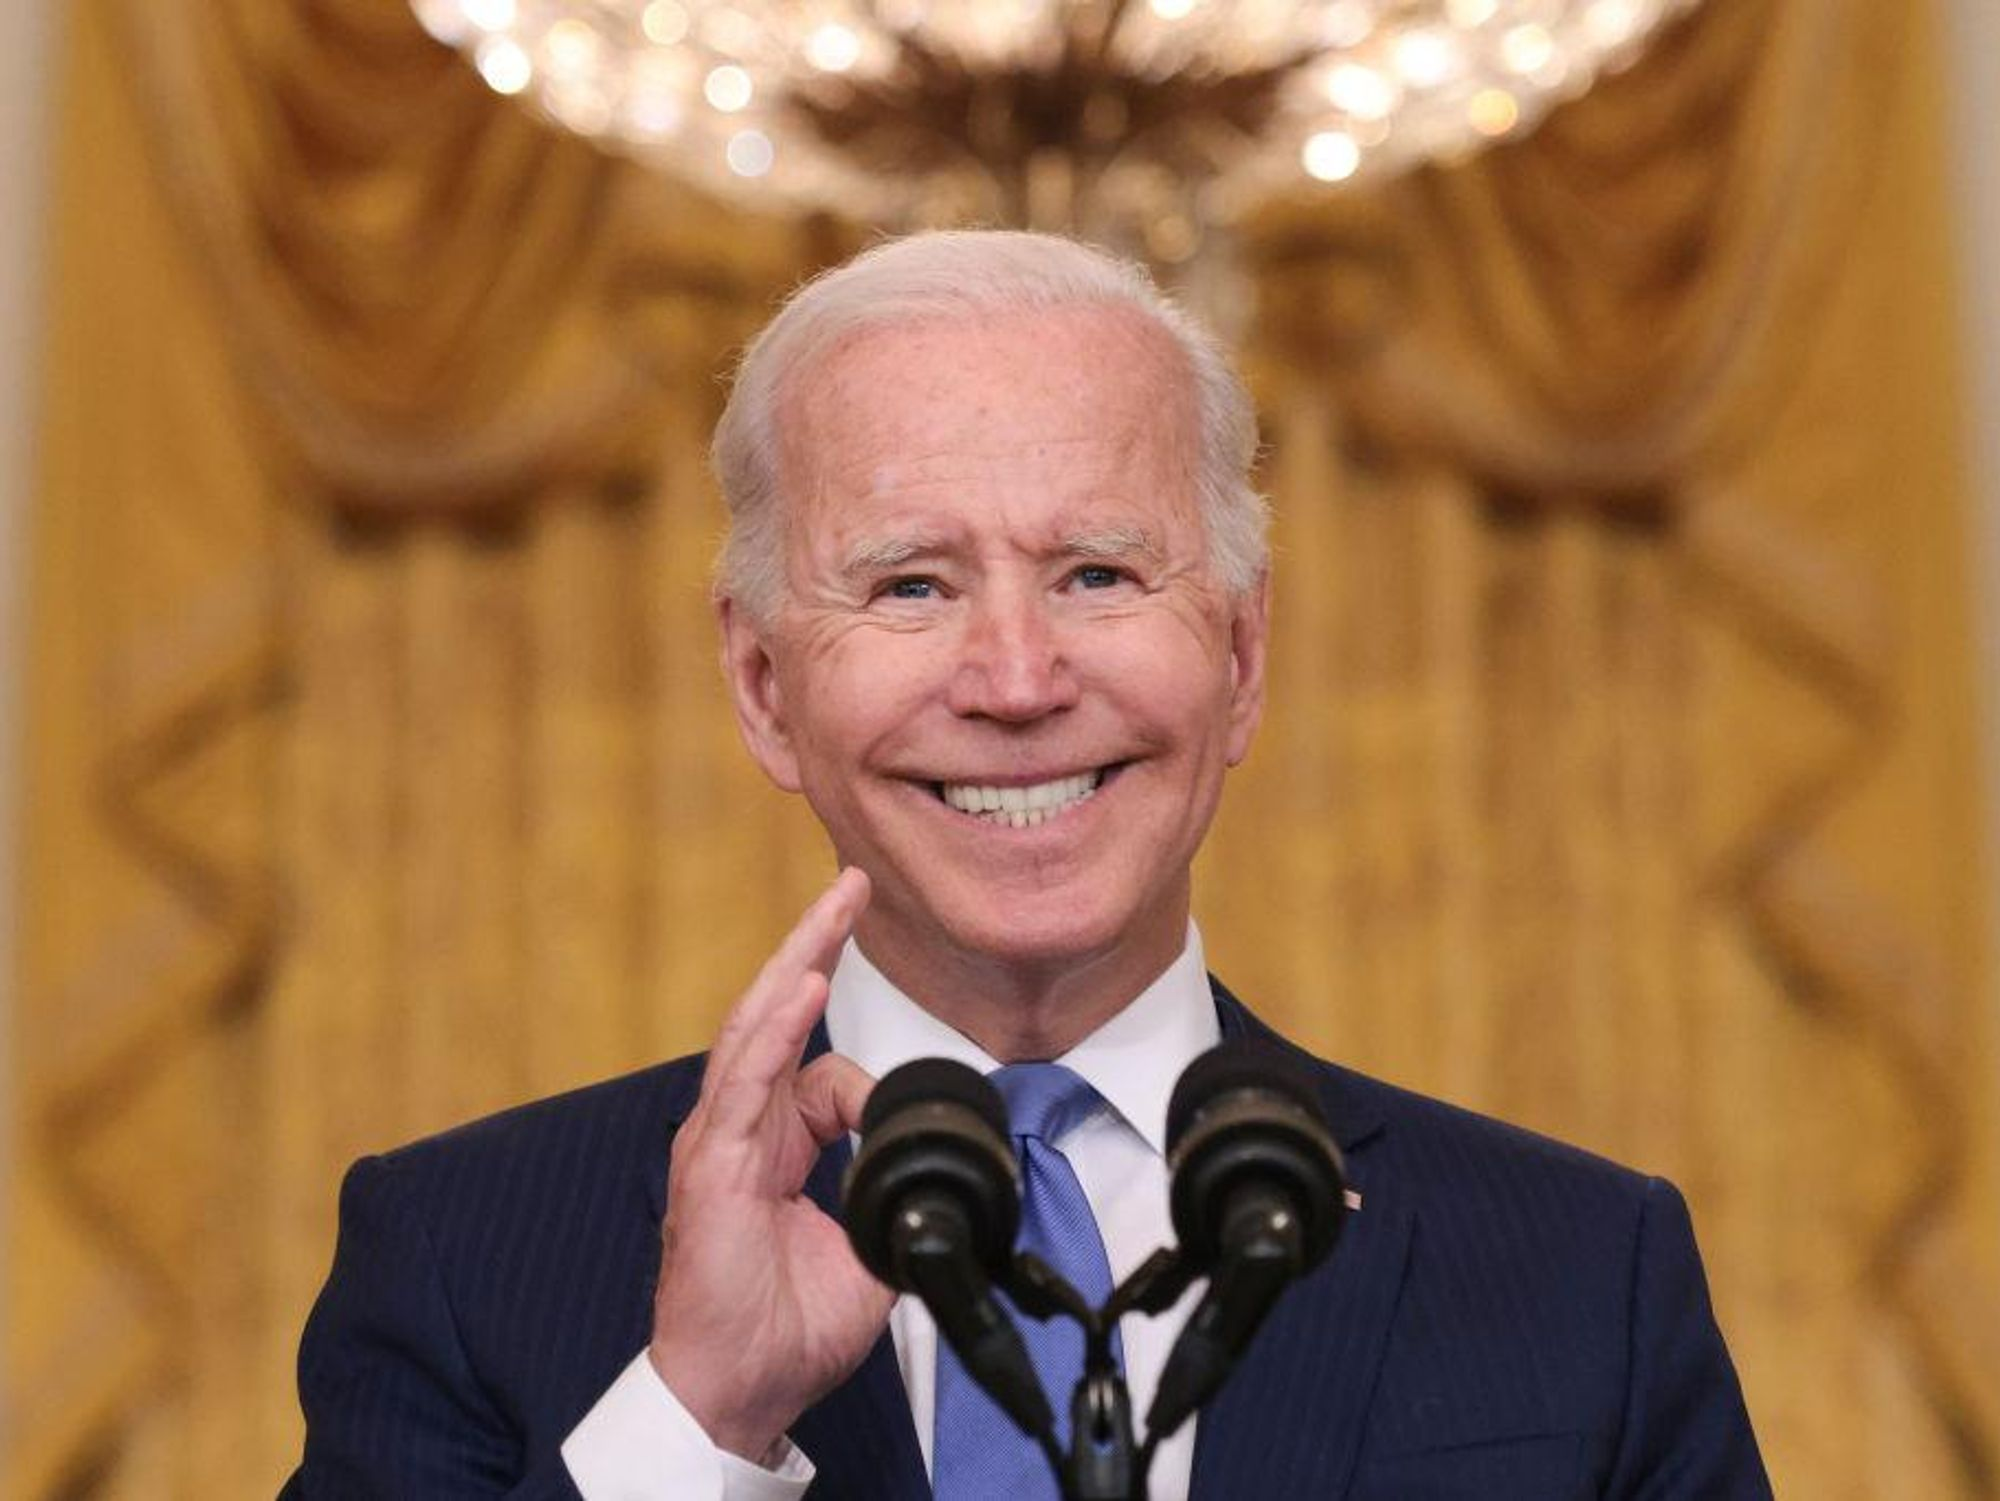 Two dozen GOP attorneys general sign letter threatening legal action over Biden's vaccine and testing mandate for large employers